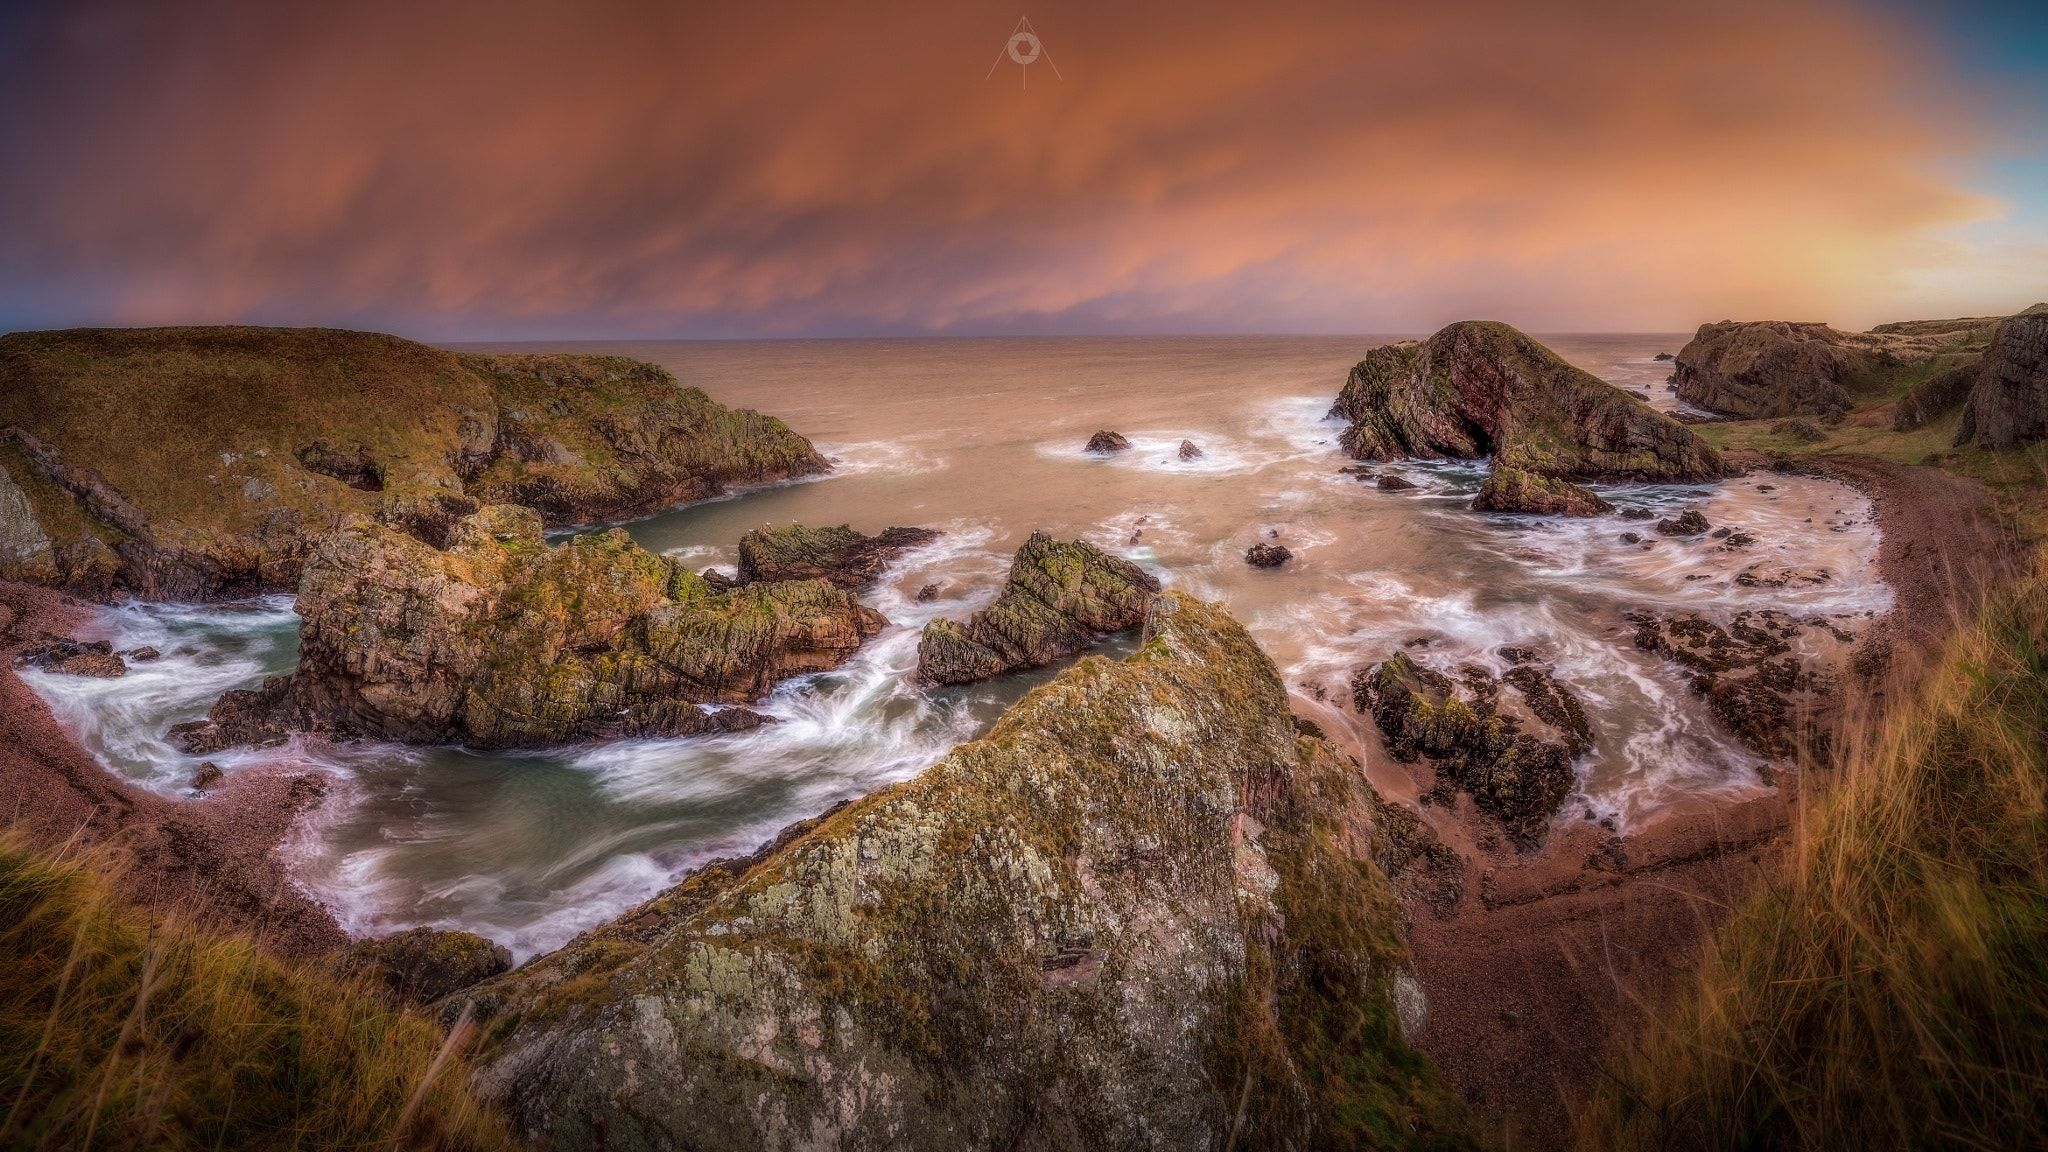 Stormy Sunrise - A stitched, panoramic, long exposure, landscape image of storm clouds over the Moray Firth, taken from Portknockie in Scotland, at sunrise.